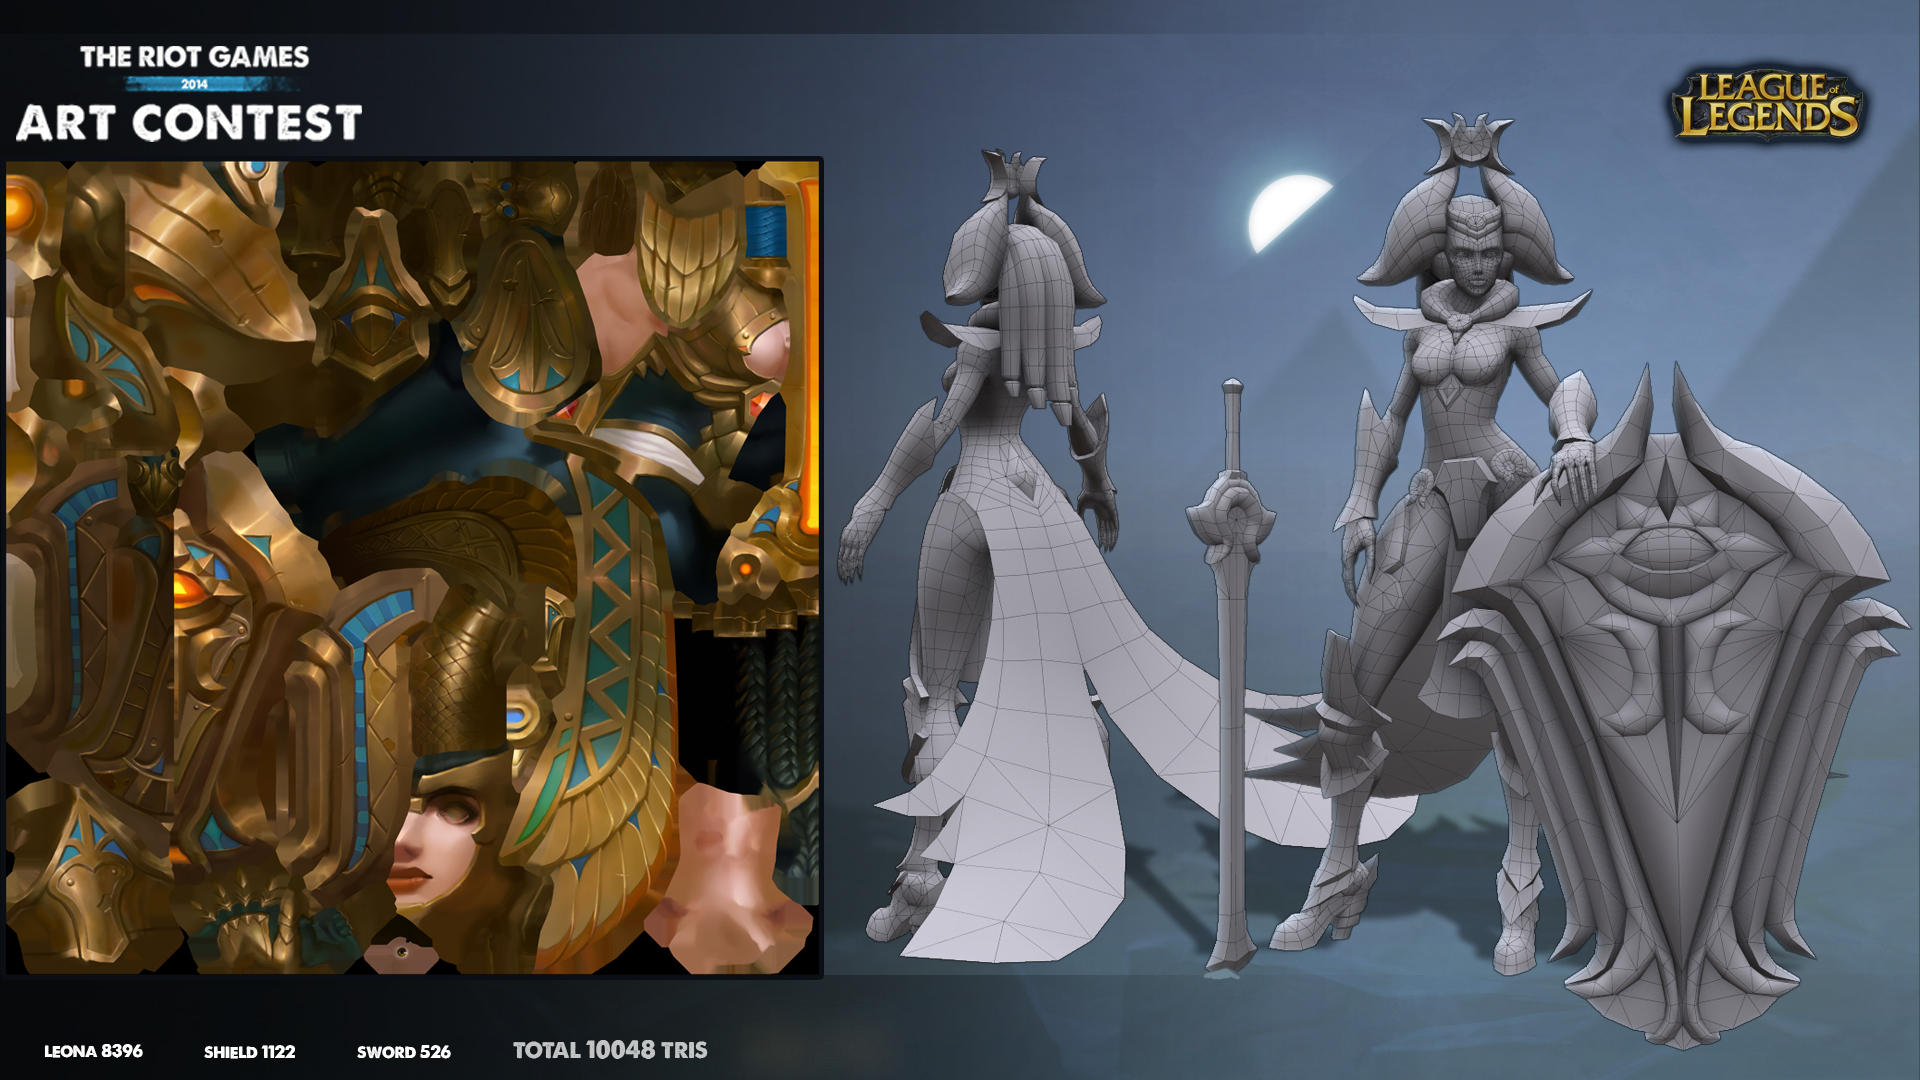 League Of Legends Character Design Contest : Riot art contest leona constructive shot by hellstern on